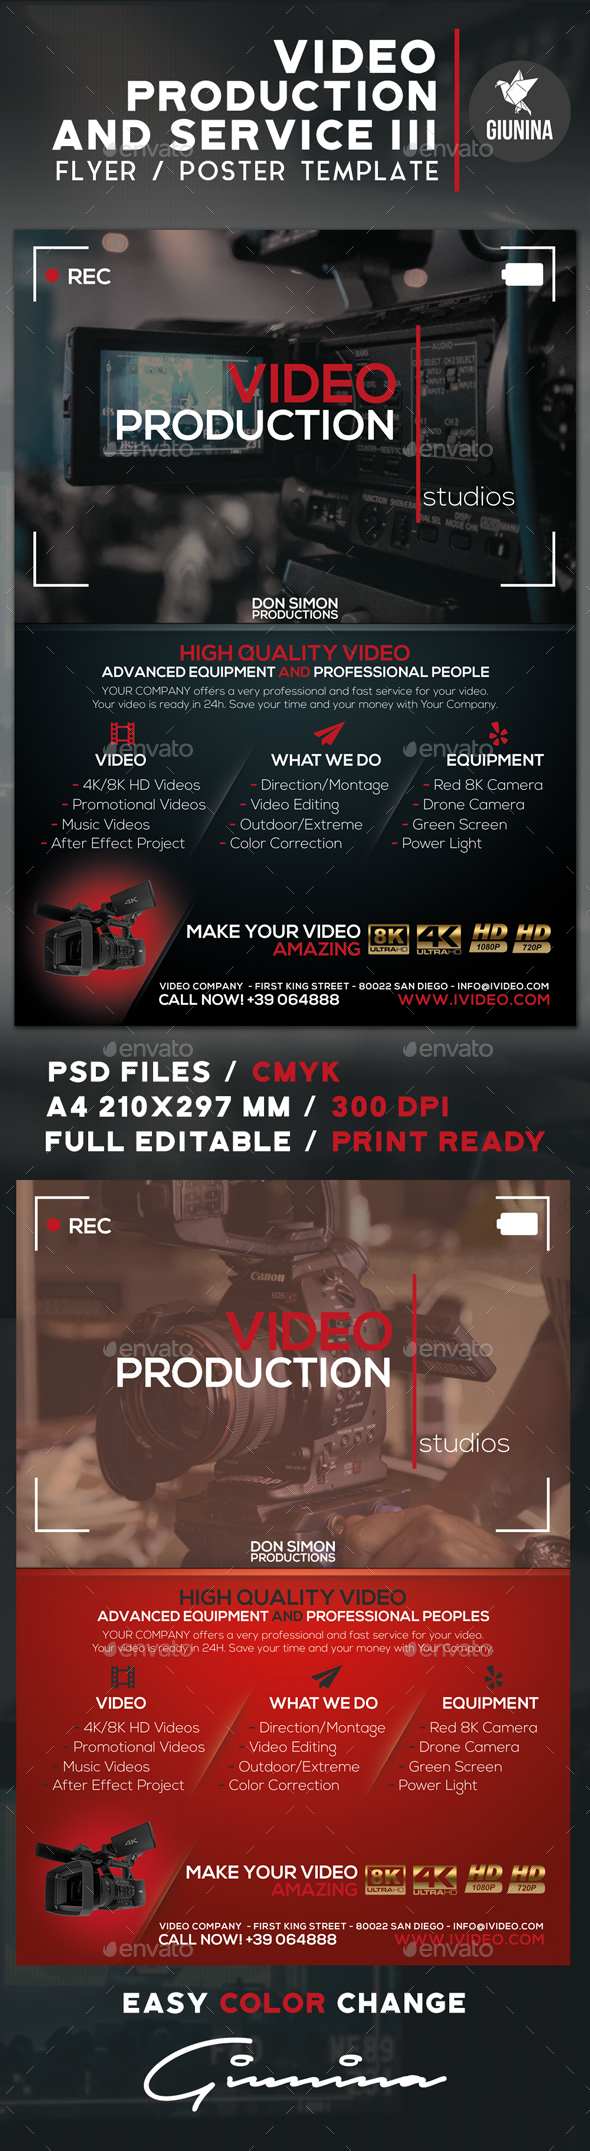 Video Production And Services 3 Flyer/Poster - Commerce Flyers